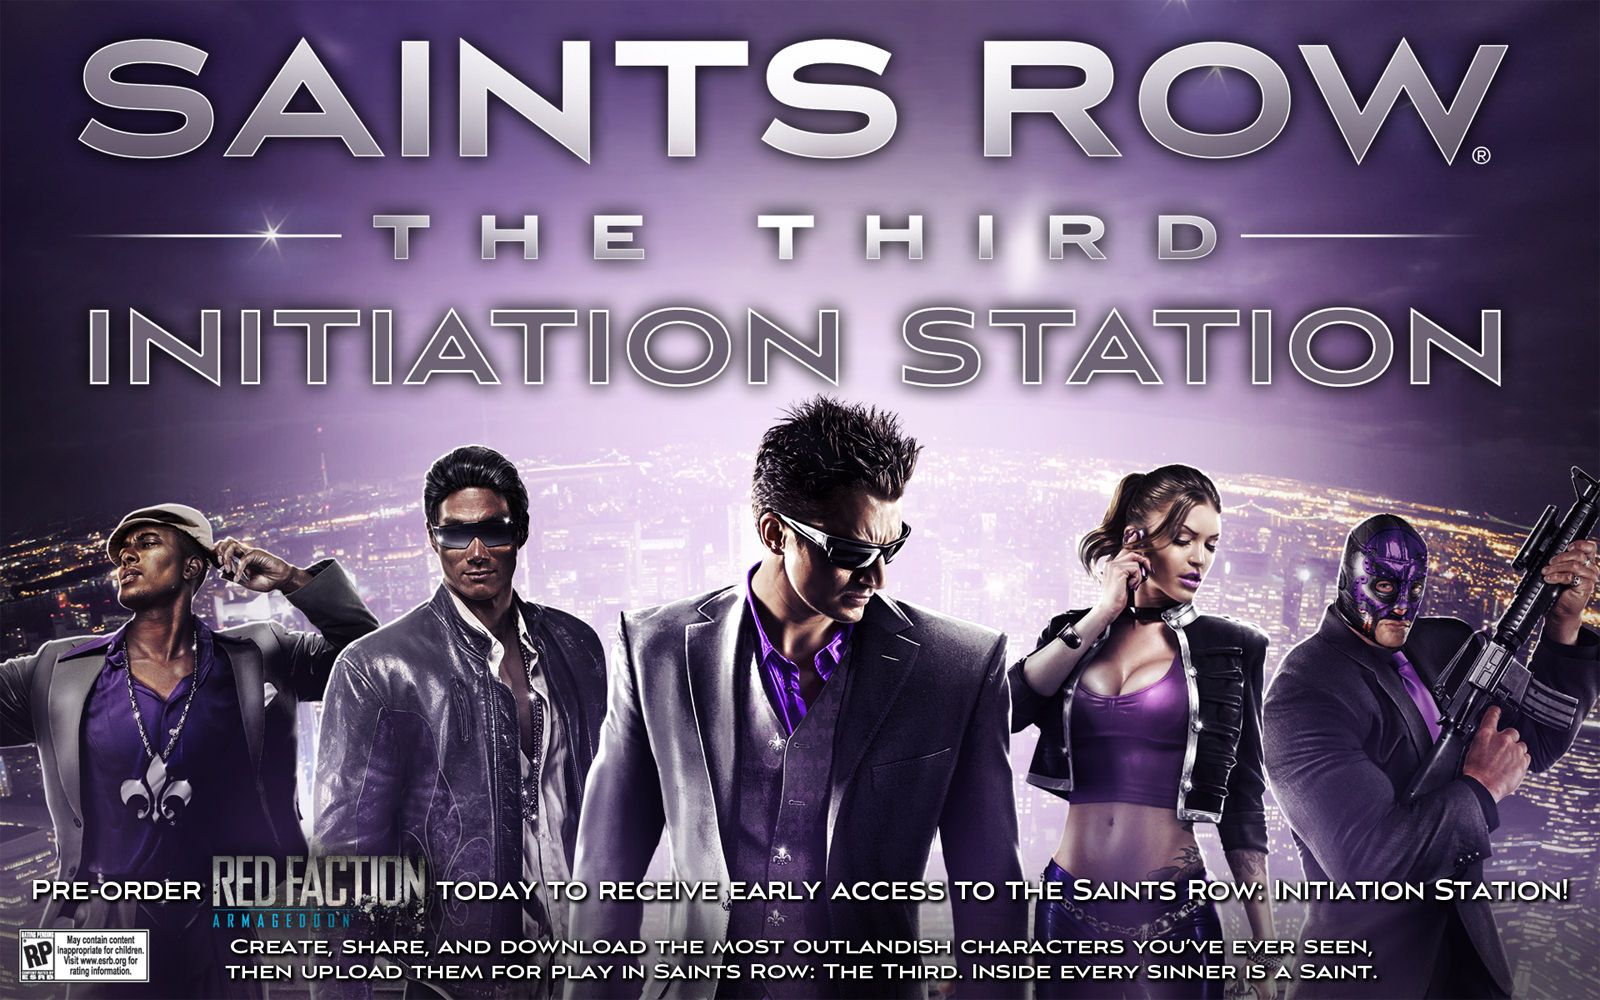 SAINTS ROW 3 PC GAMES FREE DOWNLOAD (227 MB) COMPRESSED Free